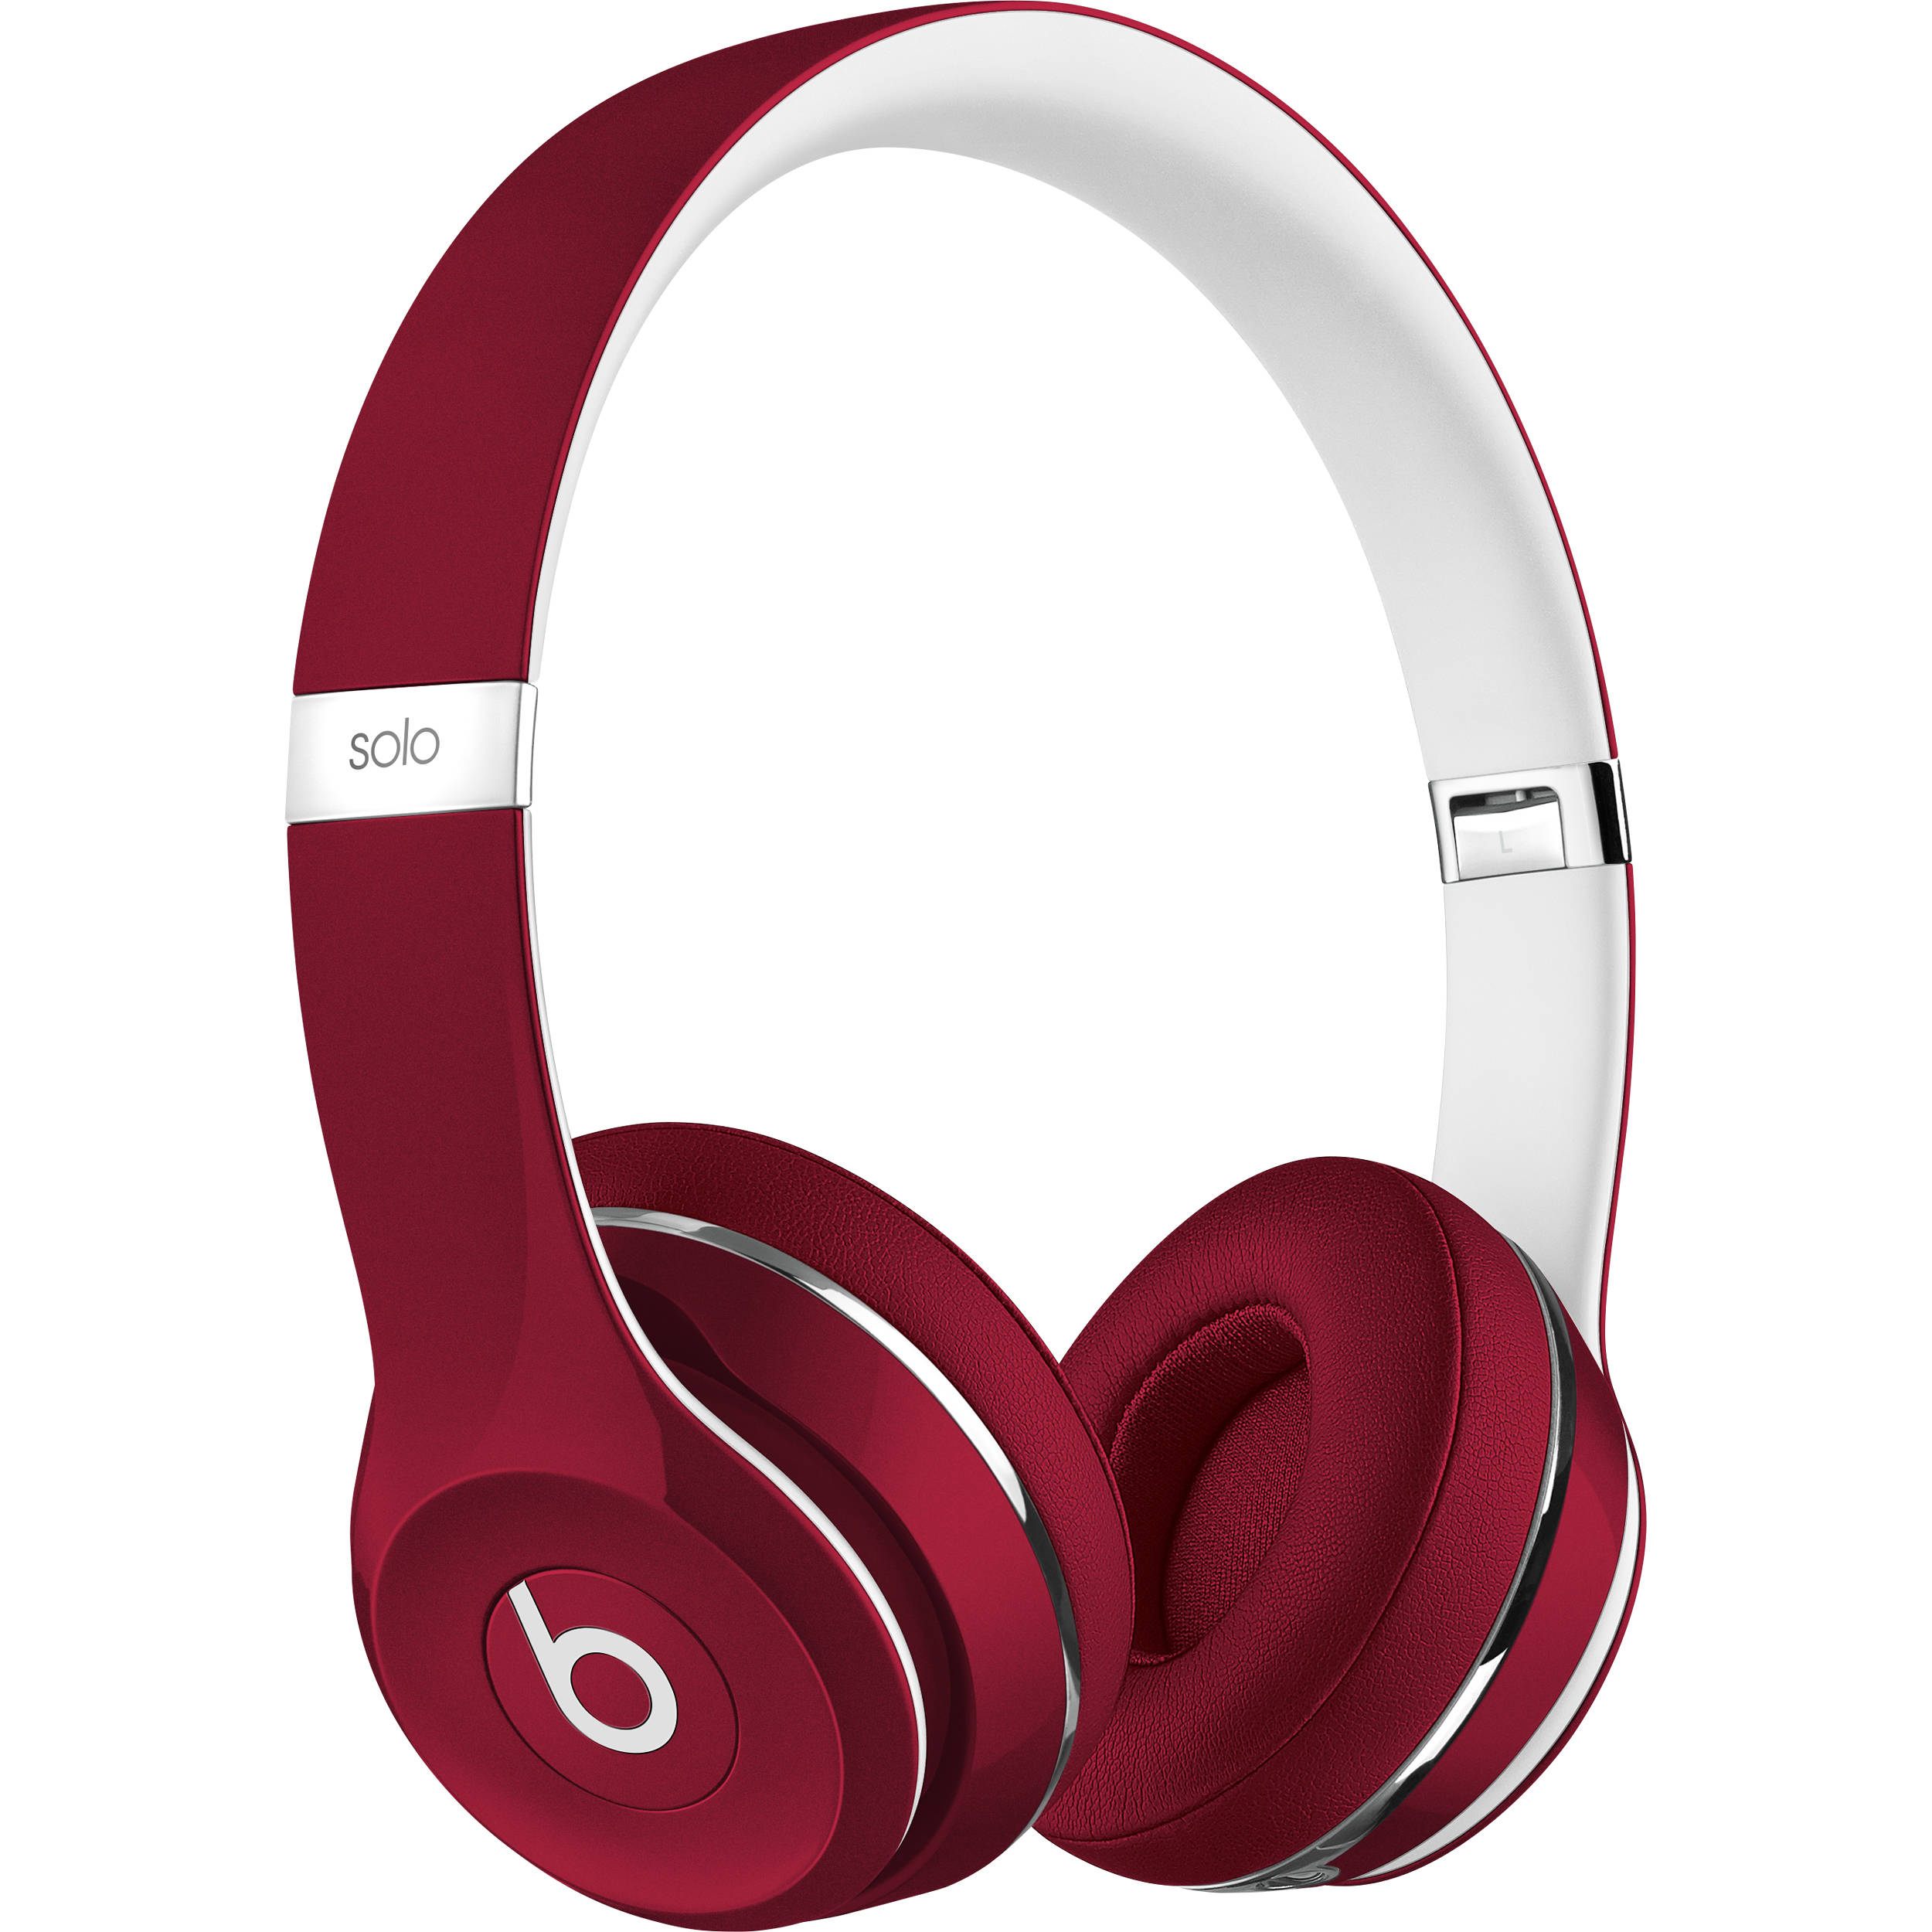 beats_by_dr_dre_ml9g2am_a_solo2_on_ear_headphones_luxe_1203895